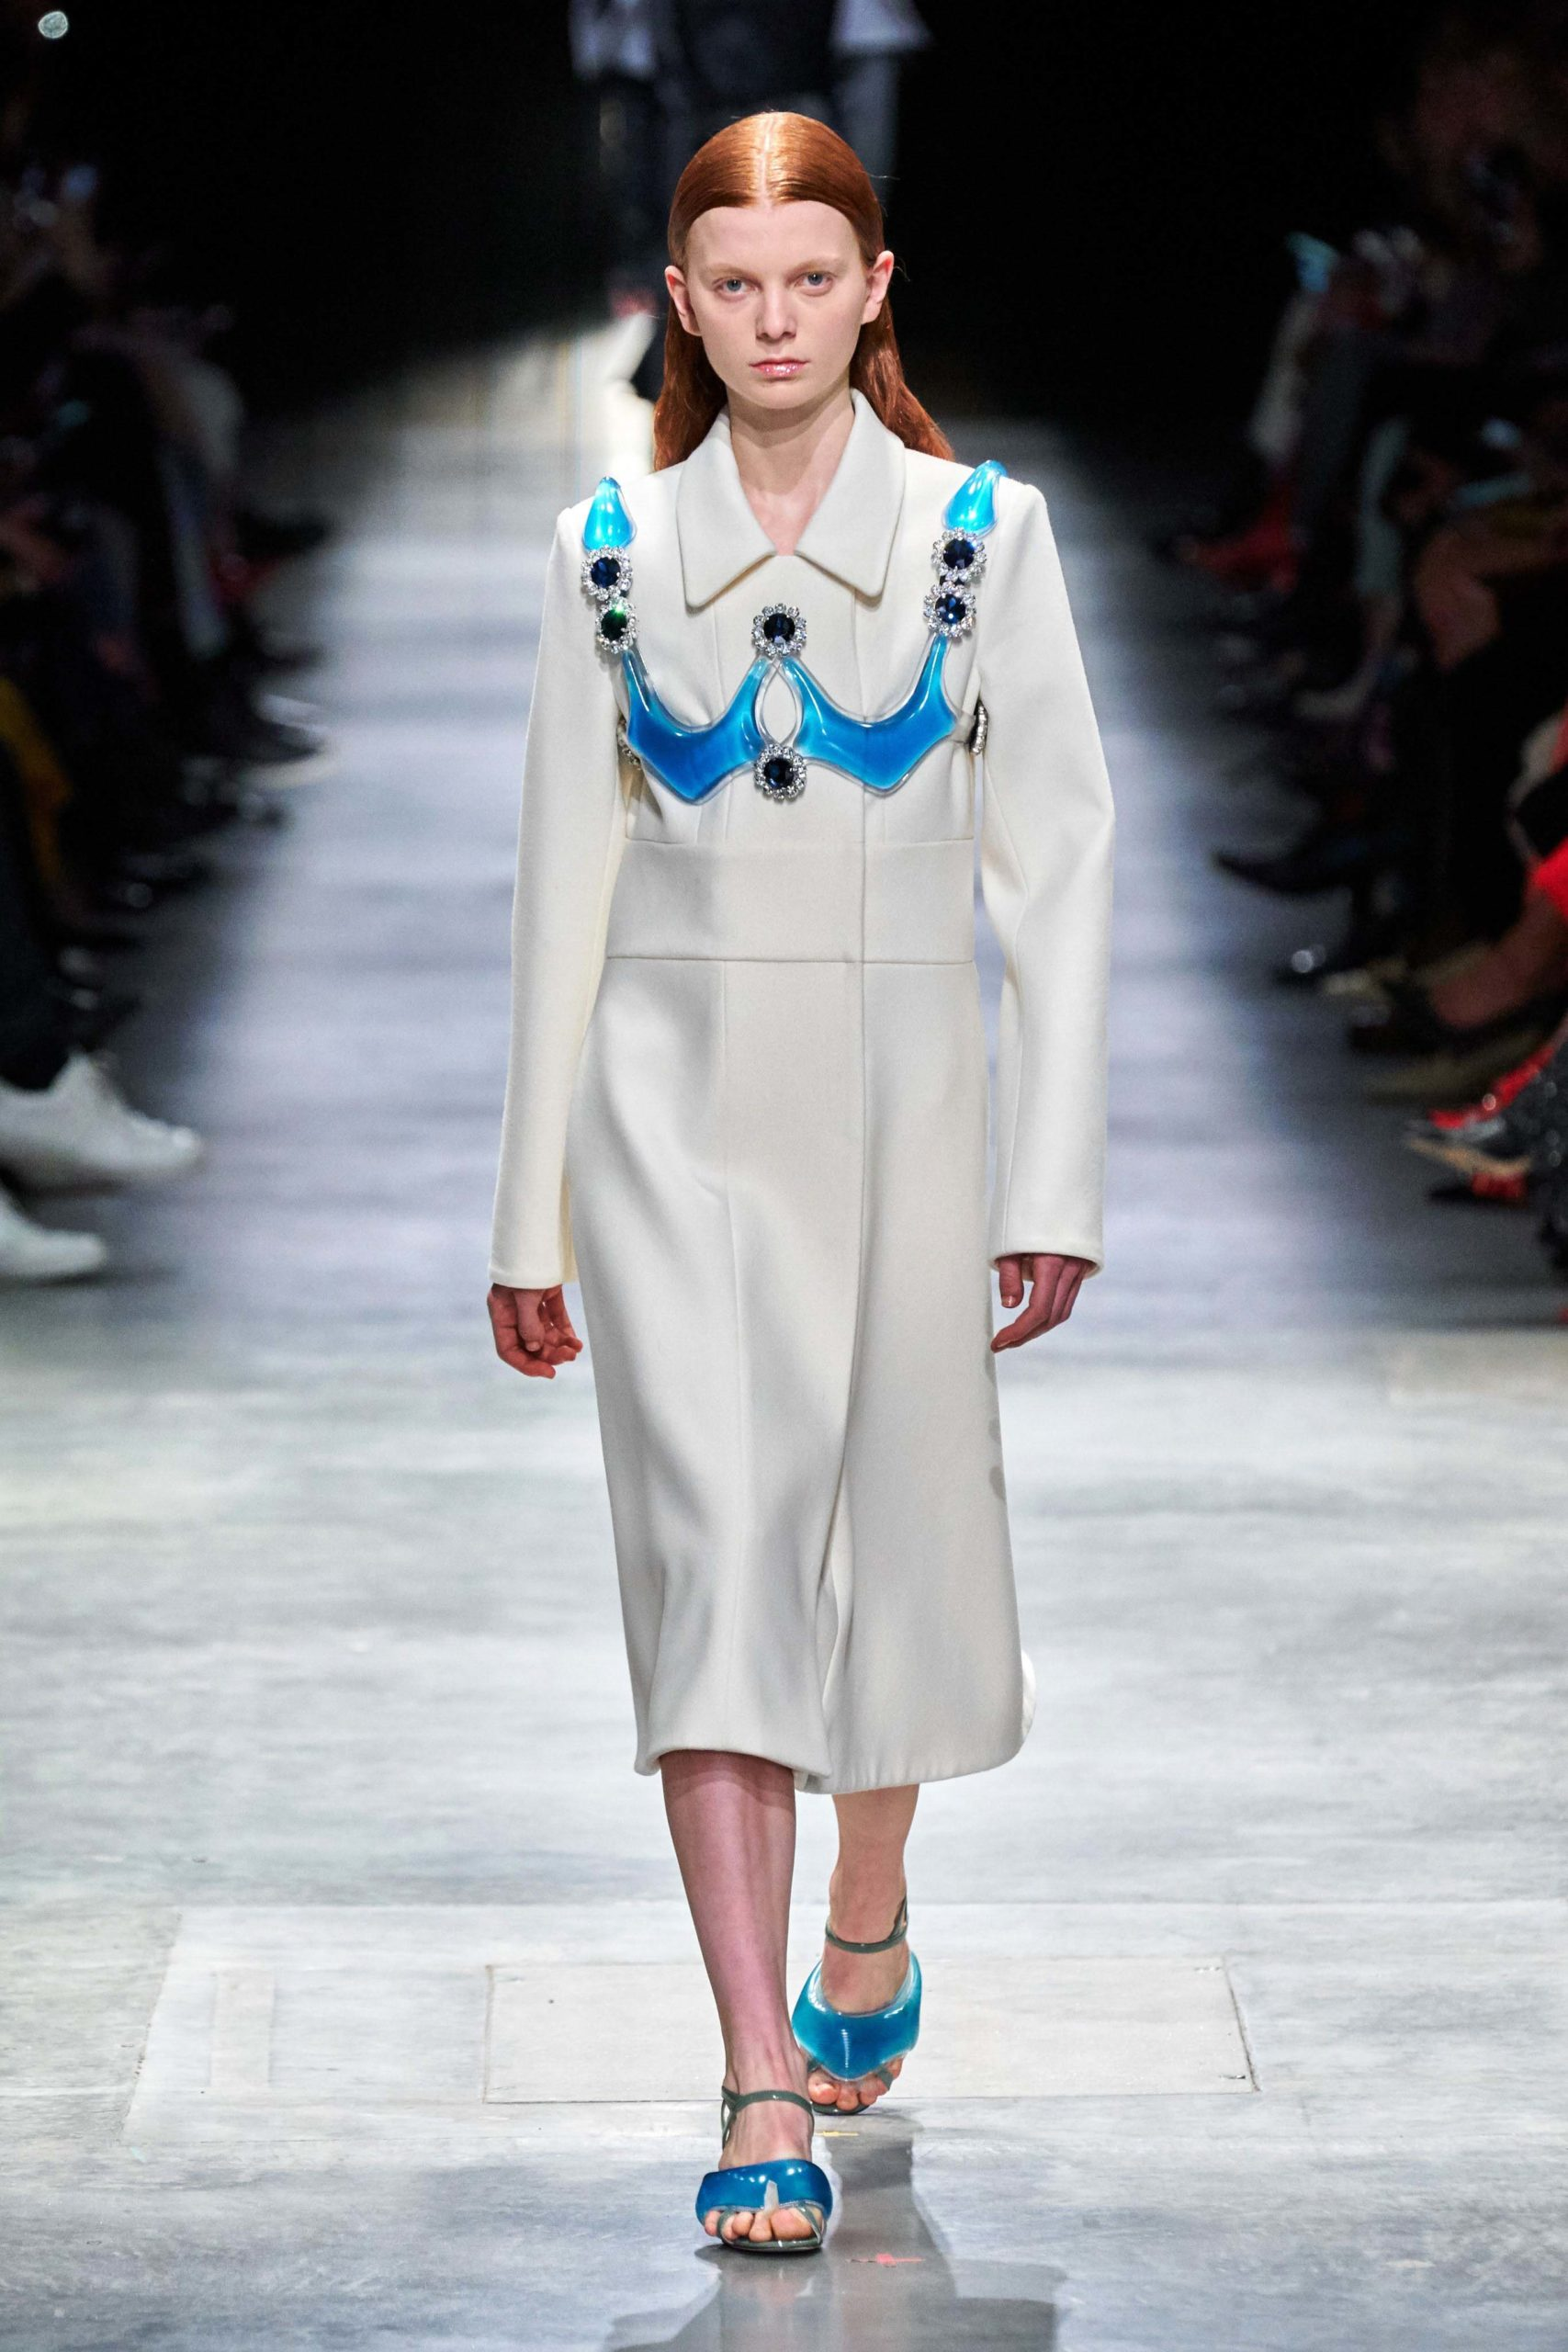 Christopher Kane Fall Winter 2020 trends runway coverage Ready To Wear Vogue blue and white Harness